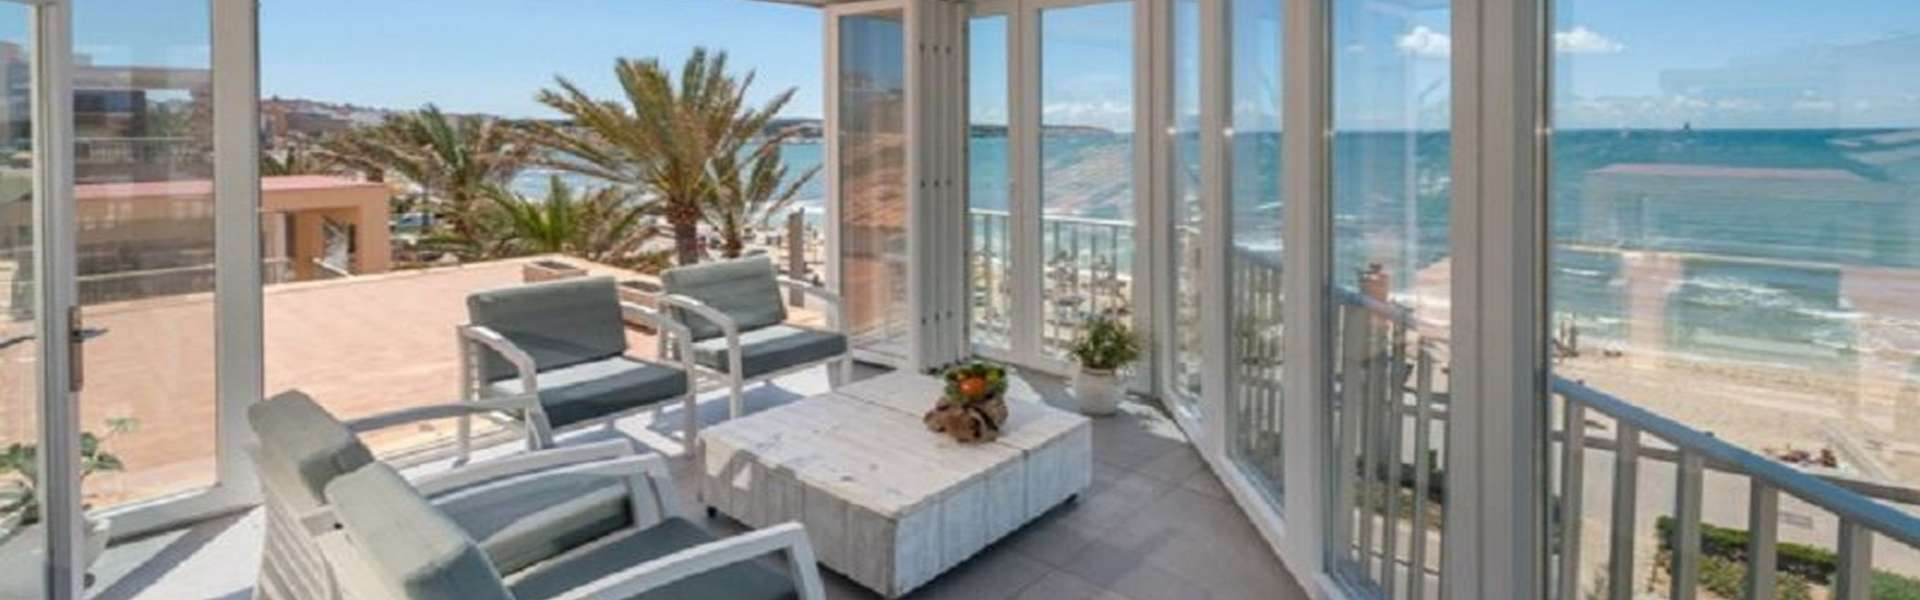 Palma - Luxusapartment in erster Meereslinie